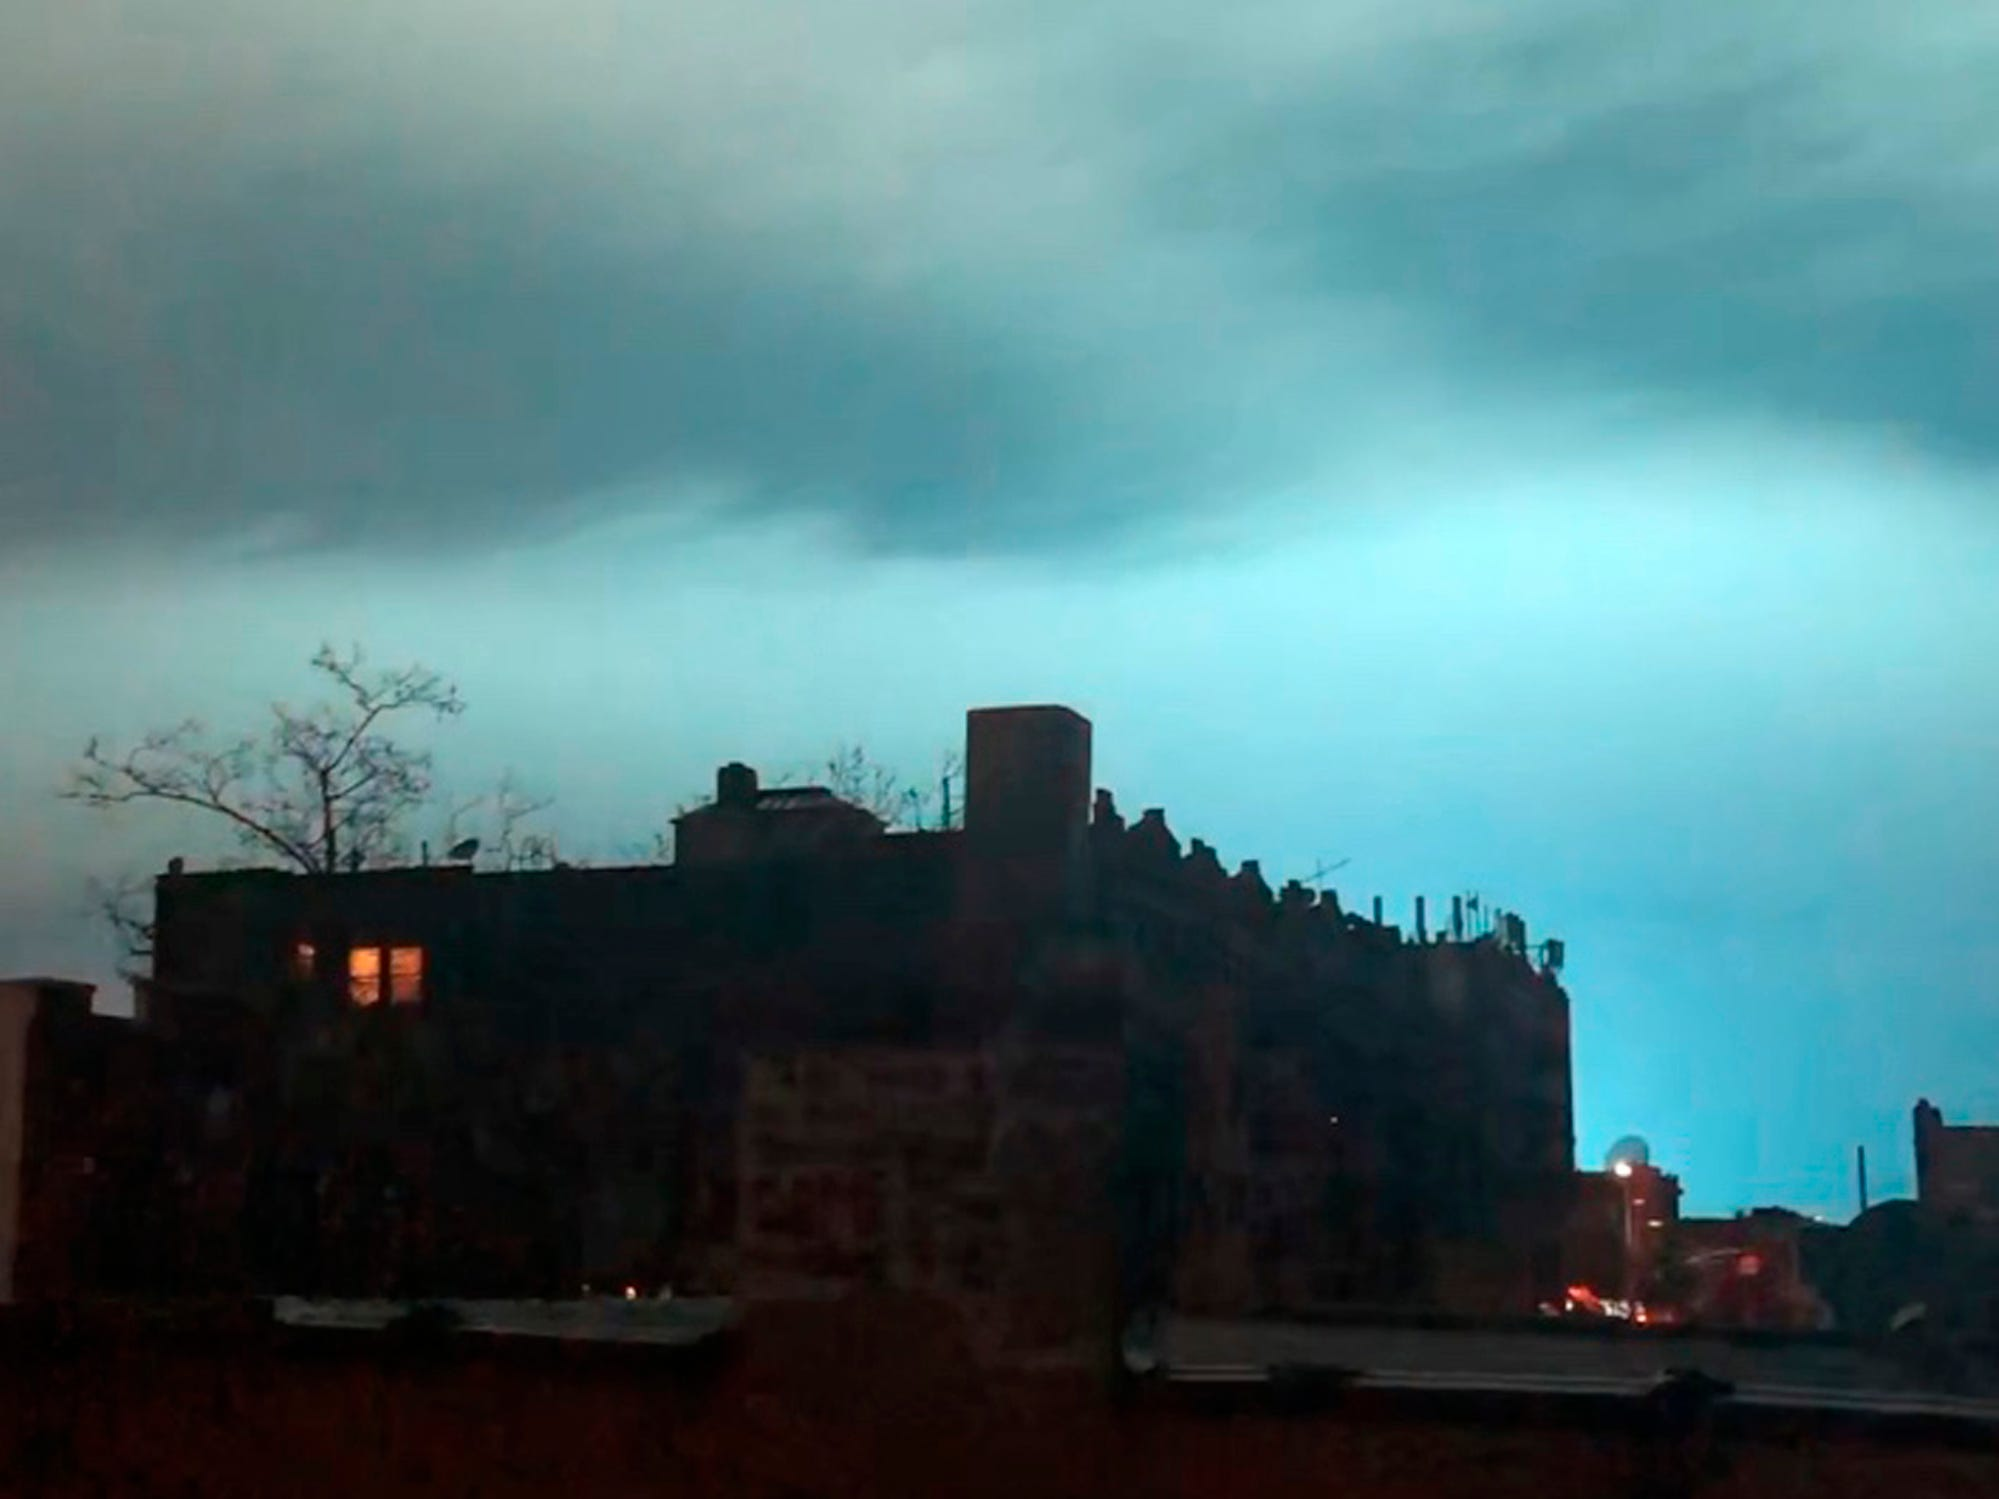 In this image taken from video, the night sky is illuminated in a bright, blue color after an explosion in the Queens borough of New York, Thursday, Dec. 27, 2018. New York police say a transformer exploded at a Con Edison facility in Queens. The explosion caused a bright, blue light that illuminated the New York skyline and caused a stir on social media. (AP Photo/Sophie Rosenbaum) ORG XMIT: NYR107